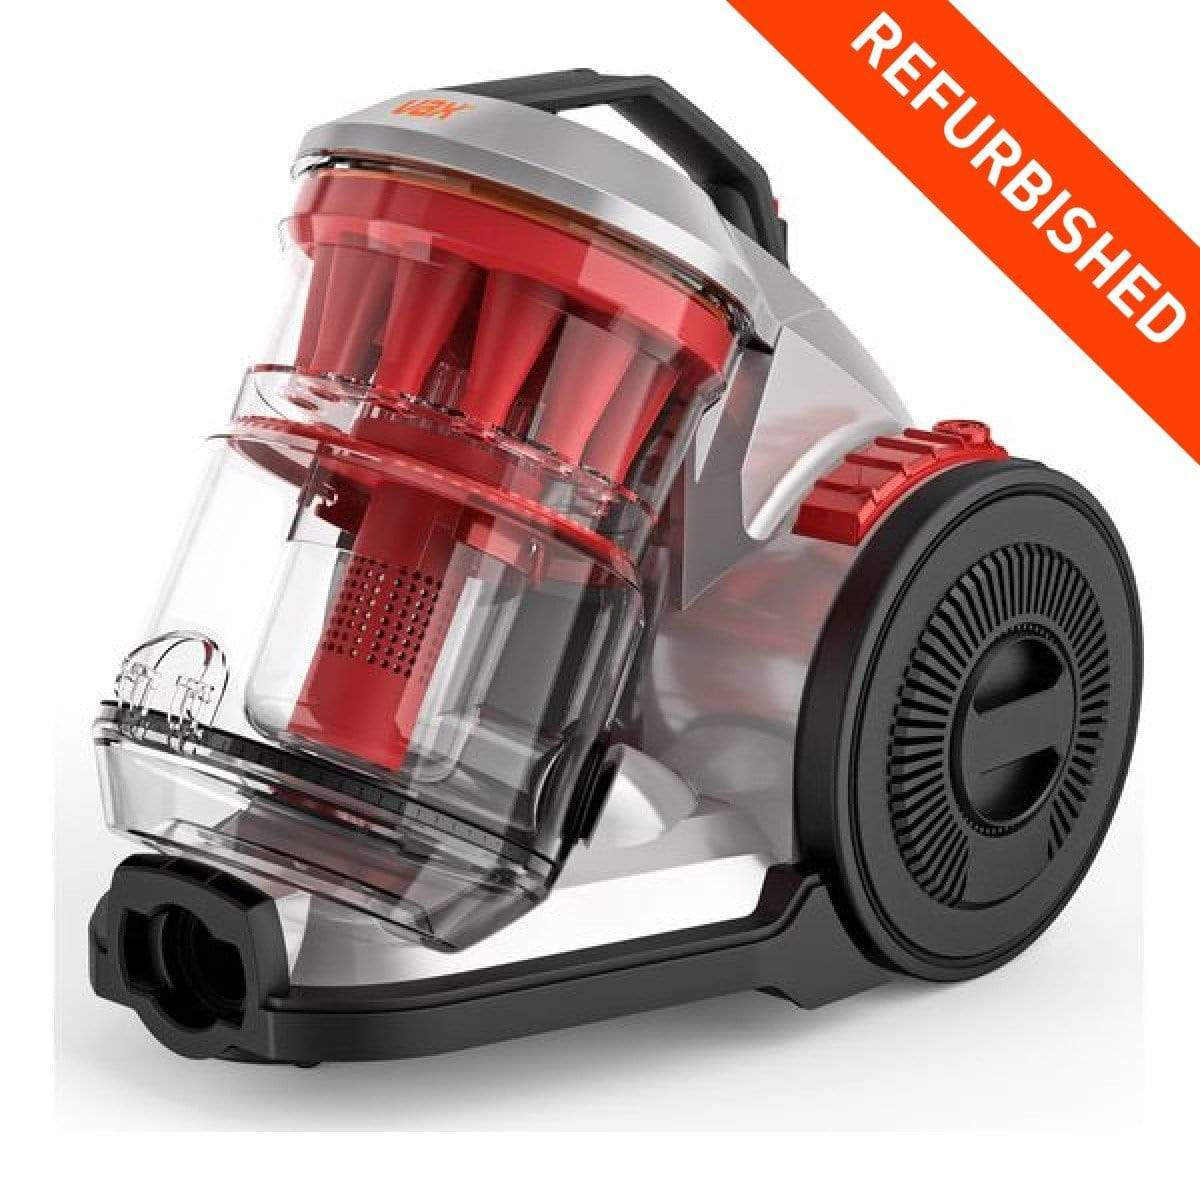 Refurbished Vax Air Stretch Multi Cyclonic Vacuum Cleaner - Red - Discounted Deals UK